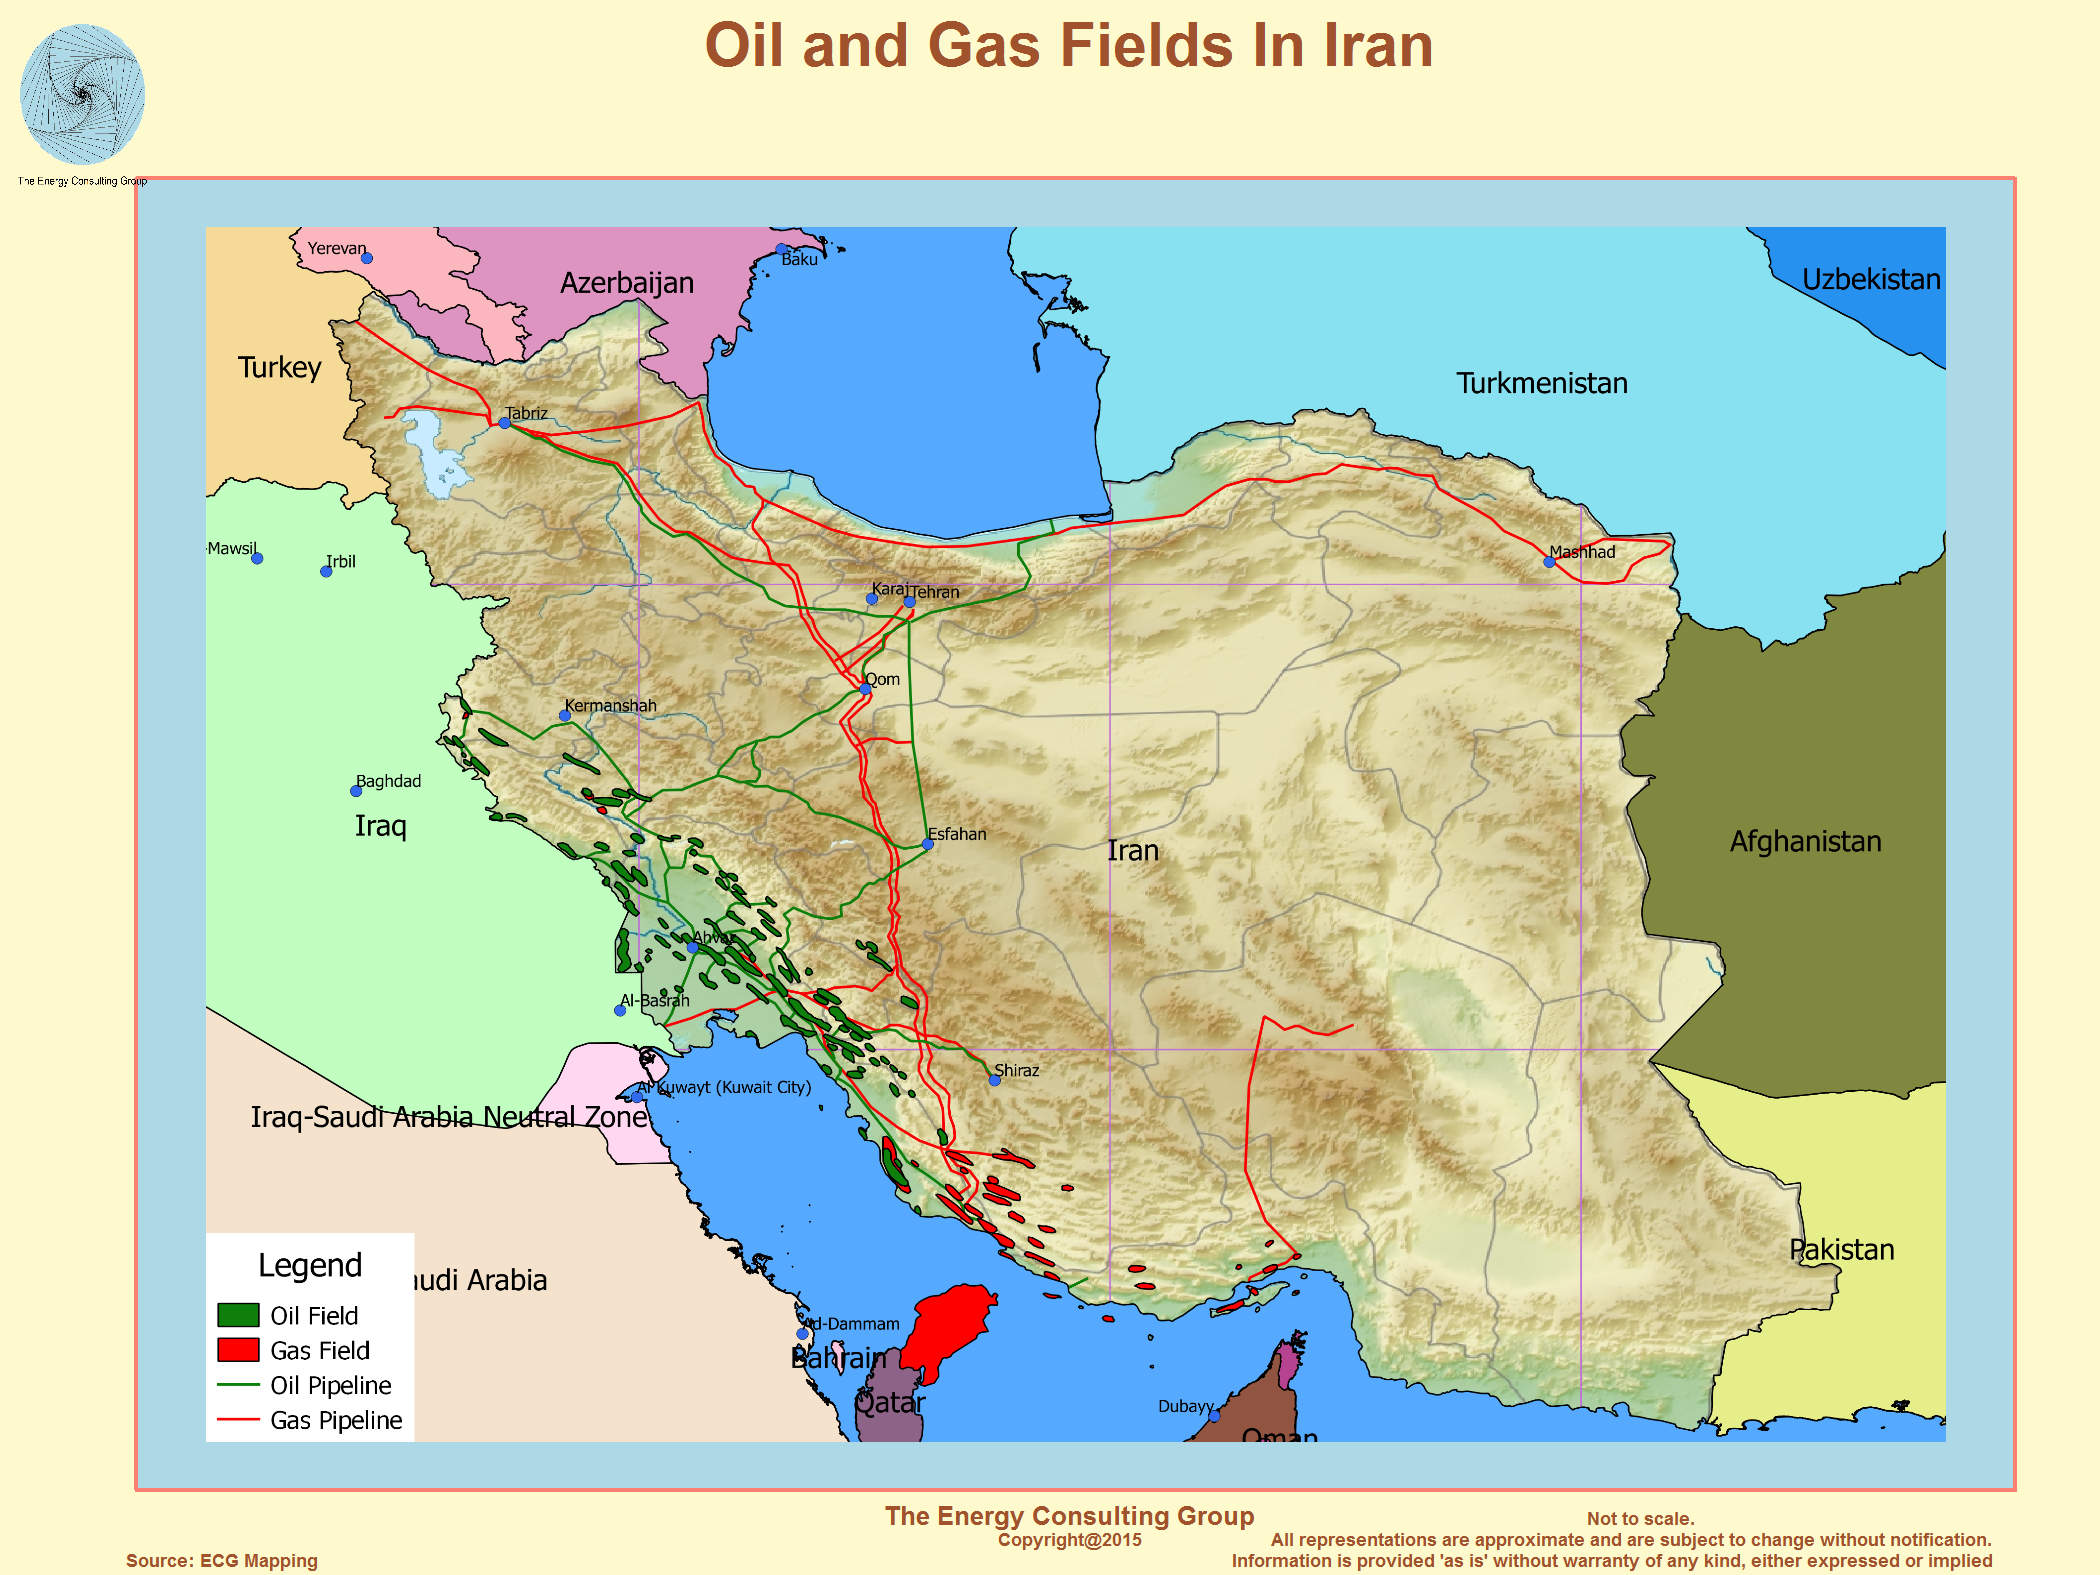 The Upstream Oil and Gas Industry In Iran